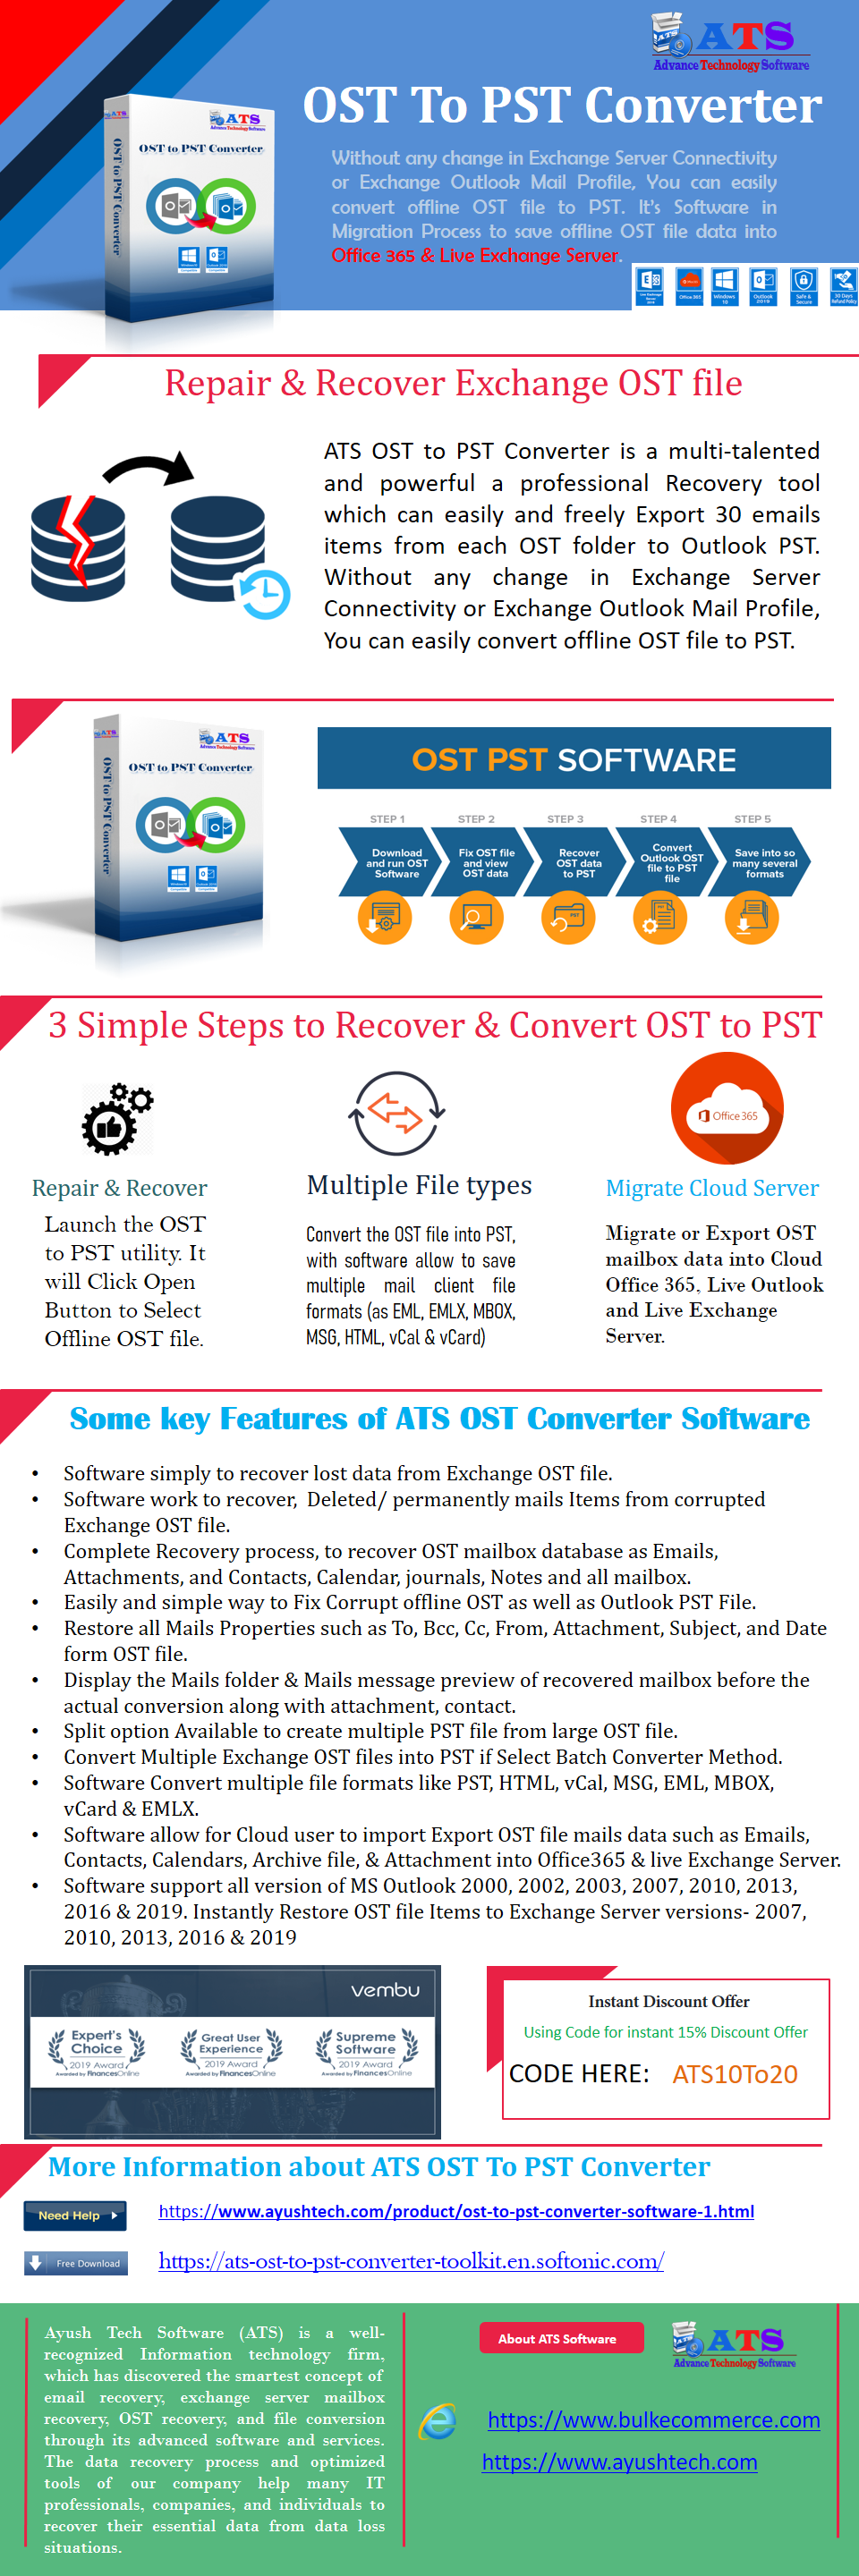 RE: Outlook OST to PST Converter Software